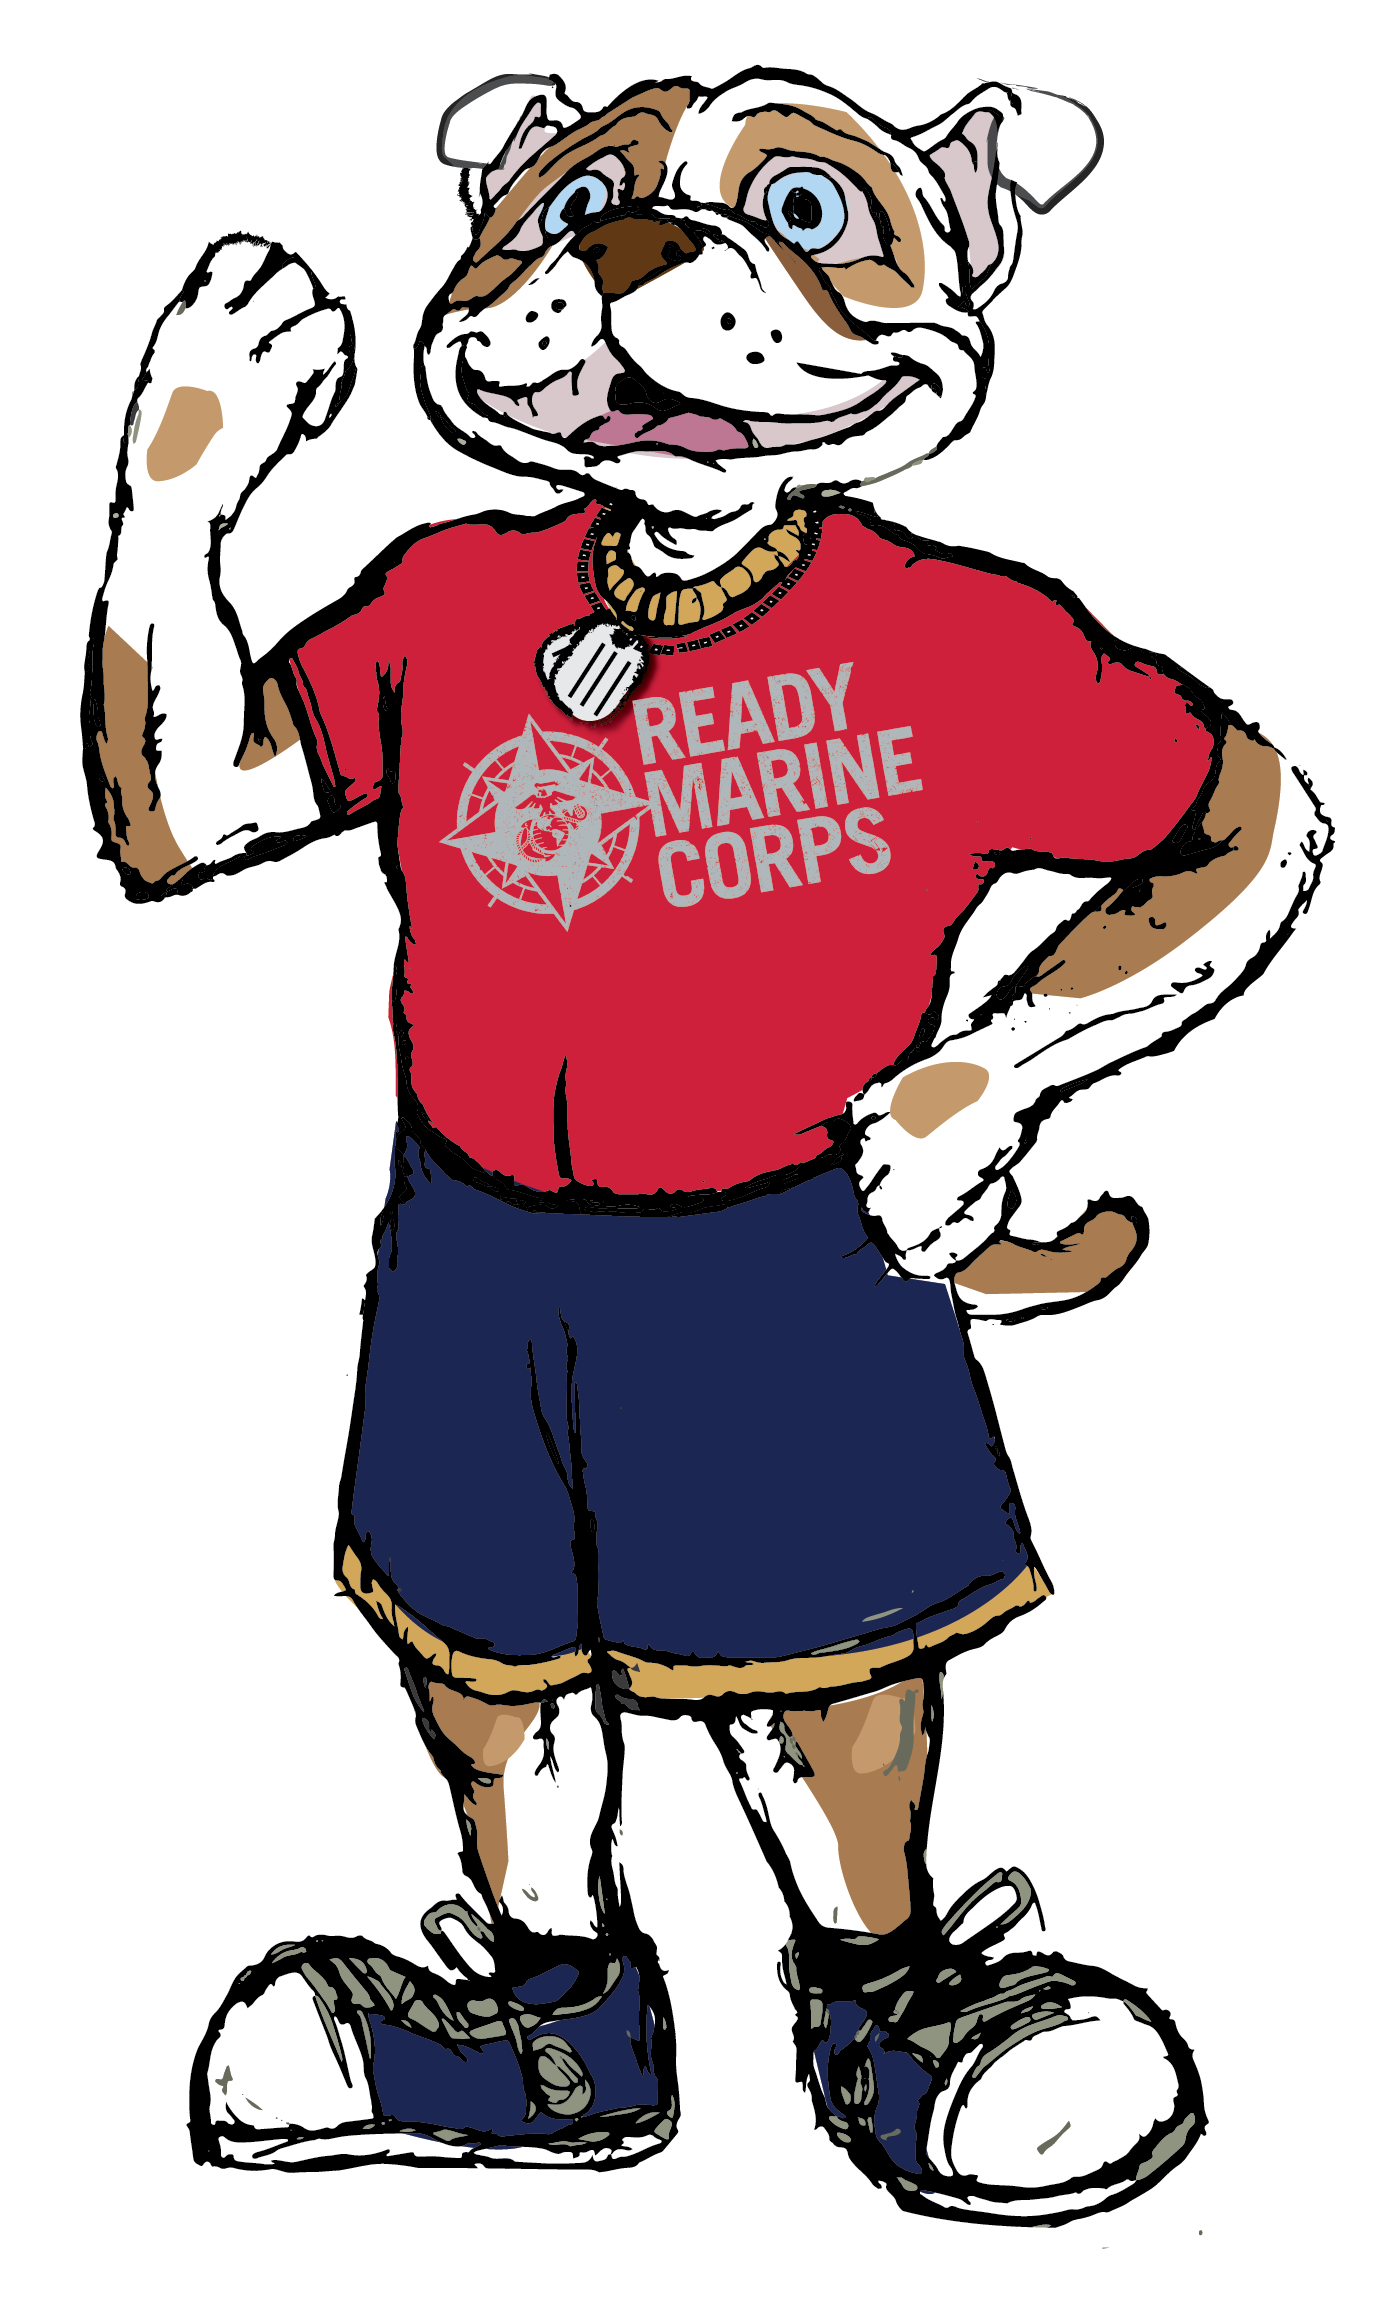 Chesty - The Ready Marine Corps Kids Mascot